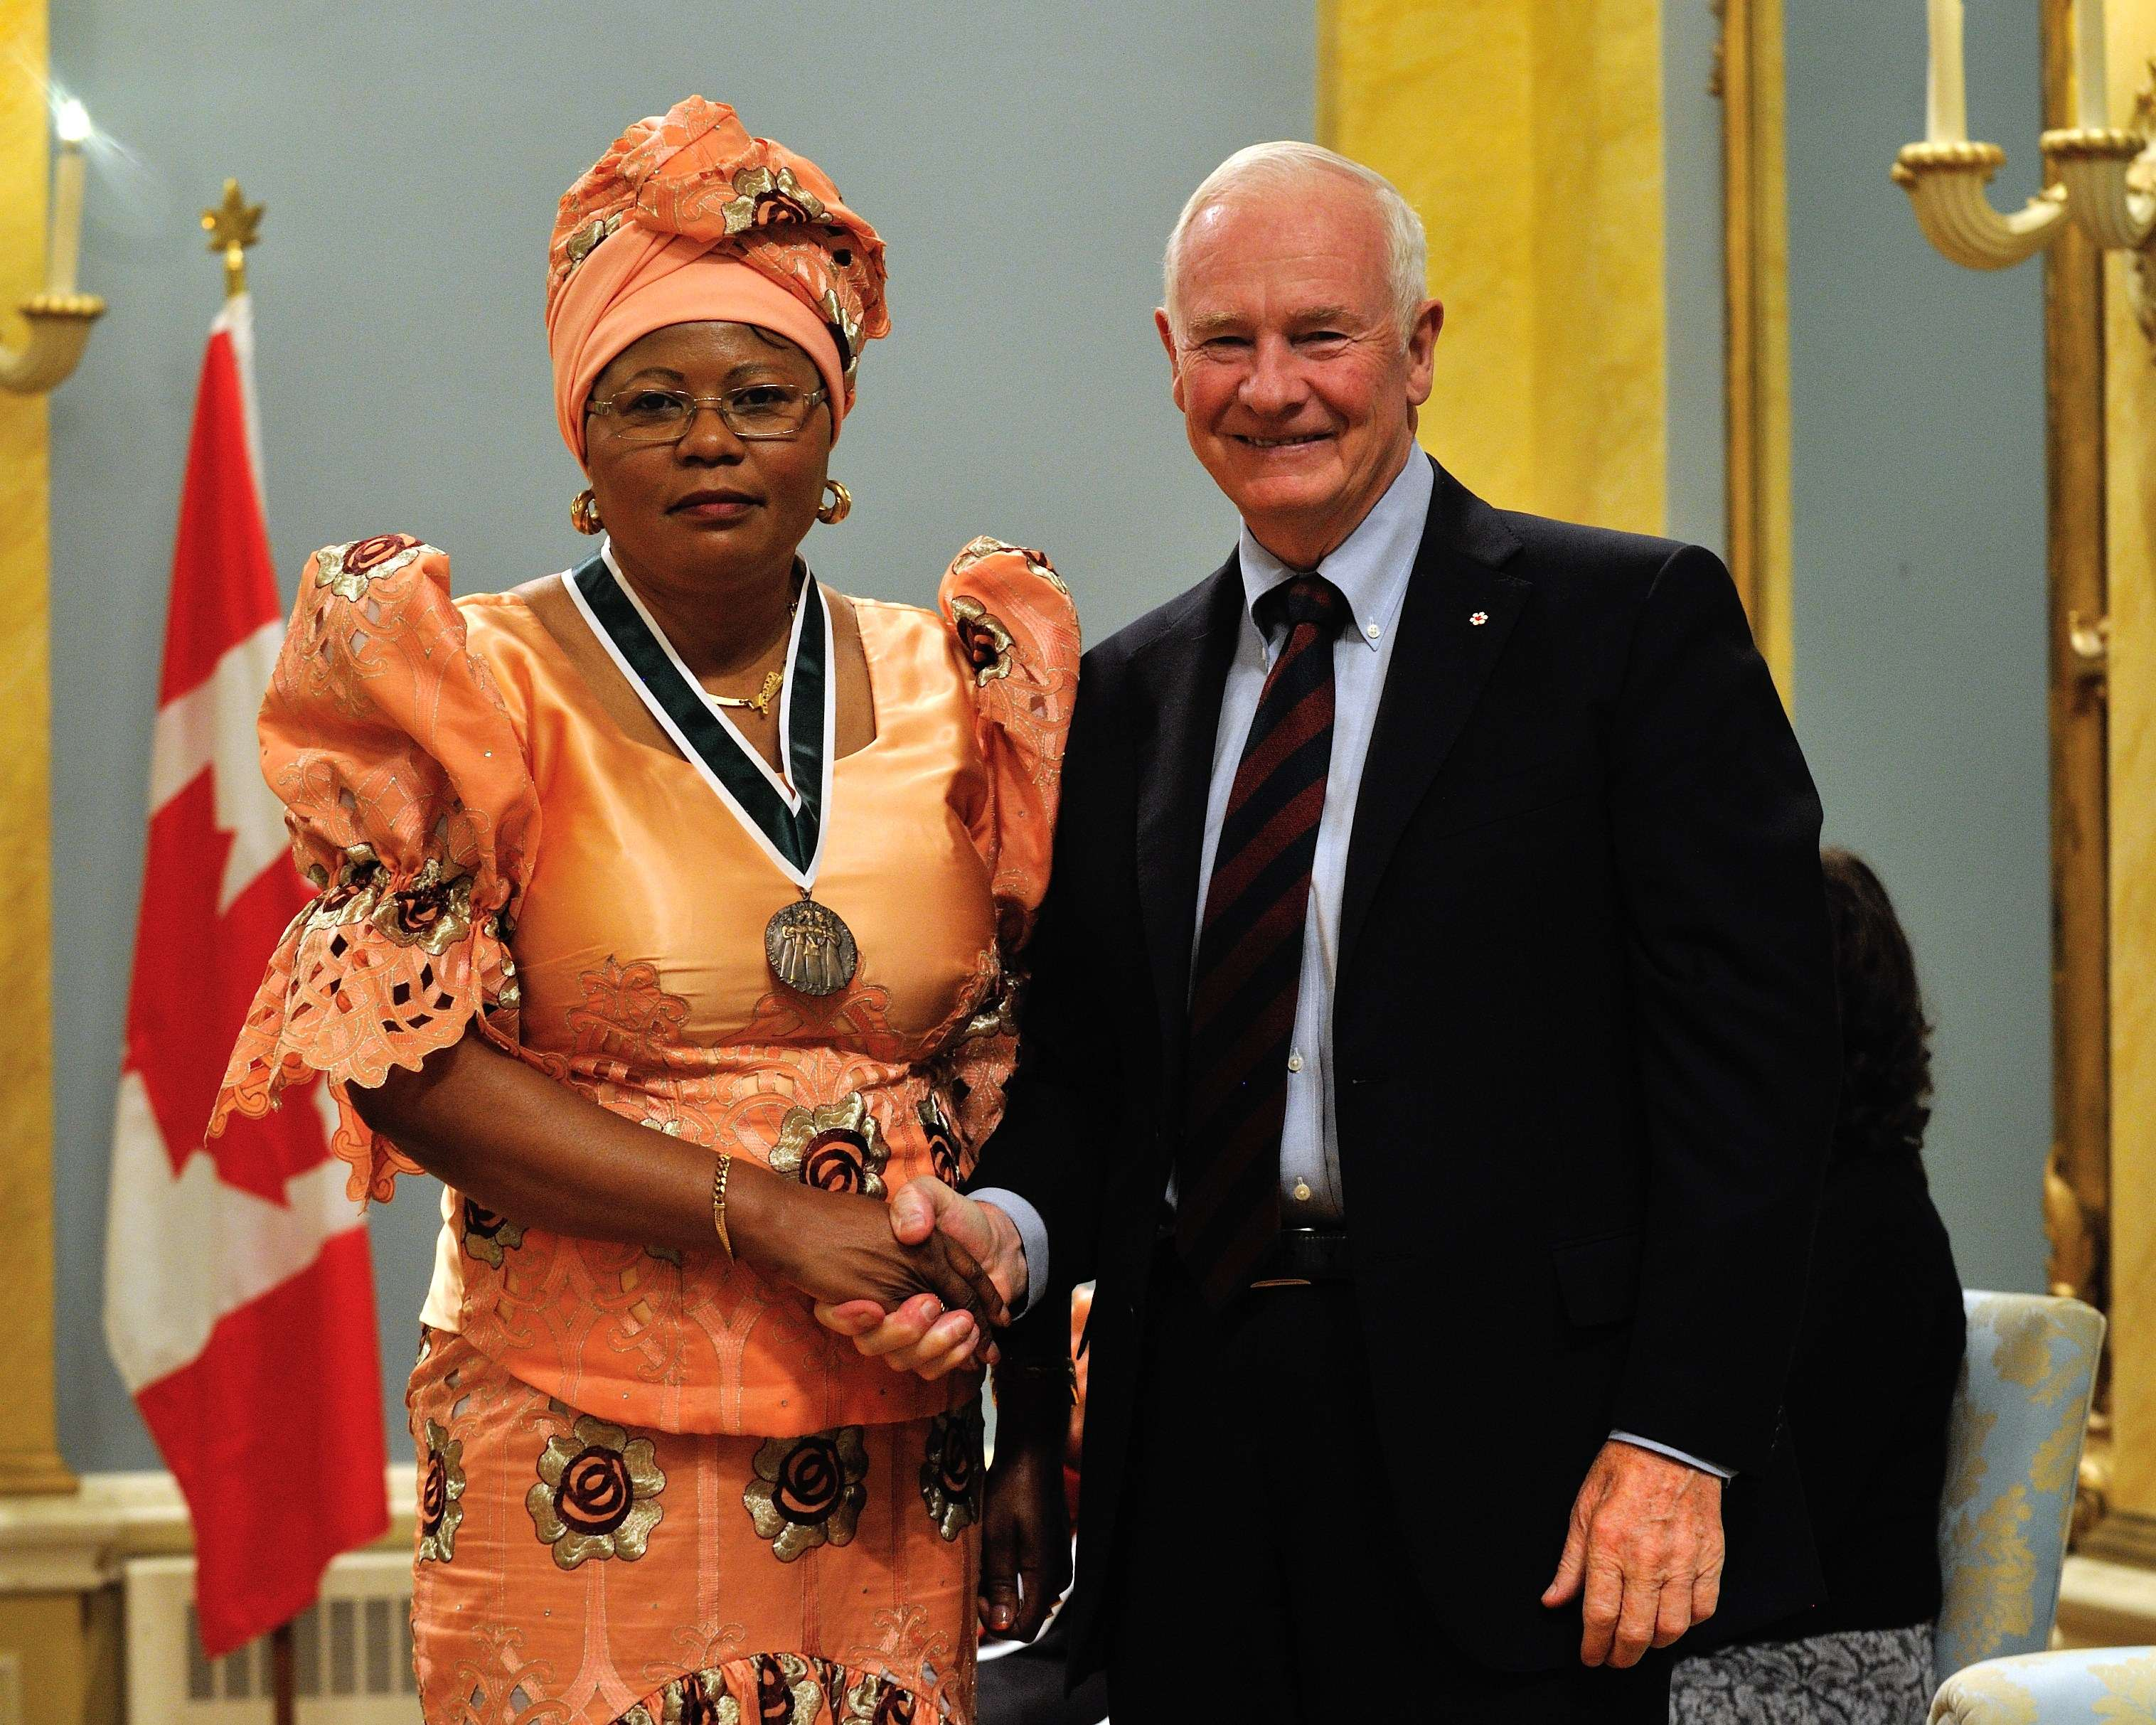 Ms. Régine Alende Tshombokongo, of Montréal, Quebec, is a dedicated community advocate who works tirelessly to improve the lives of immigrant women in Quebec.